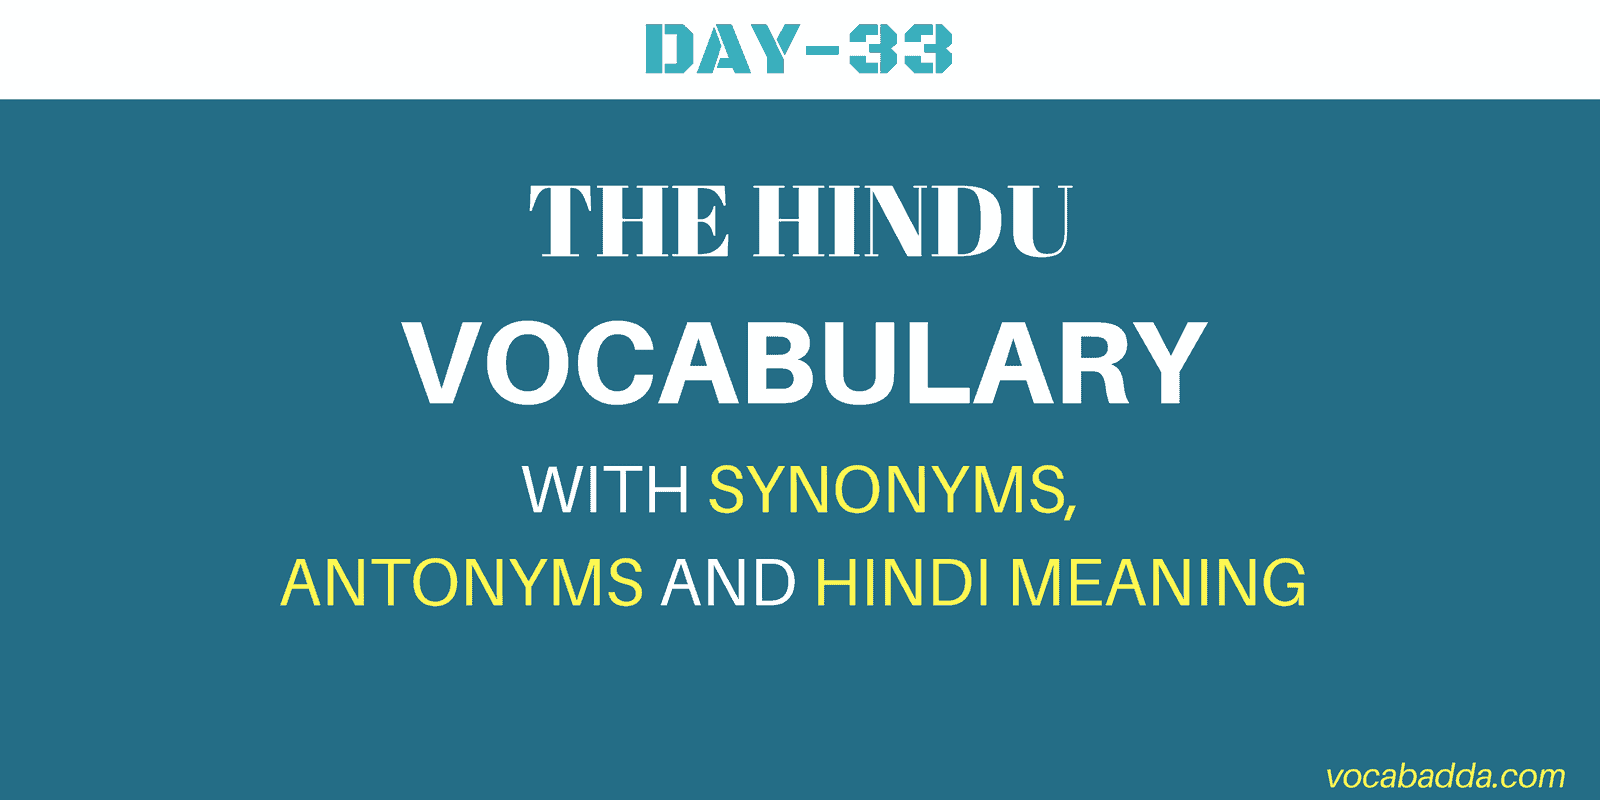 Hindu Vocabulary Day-33